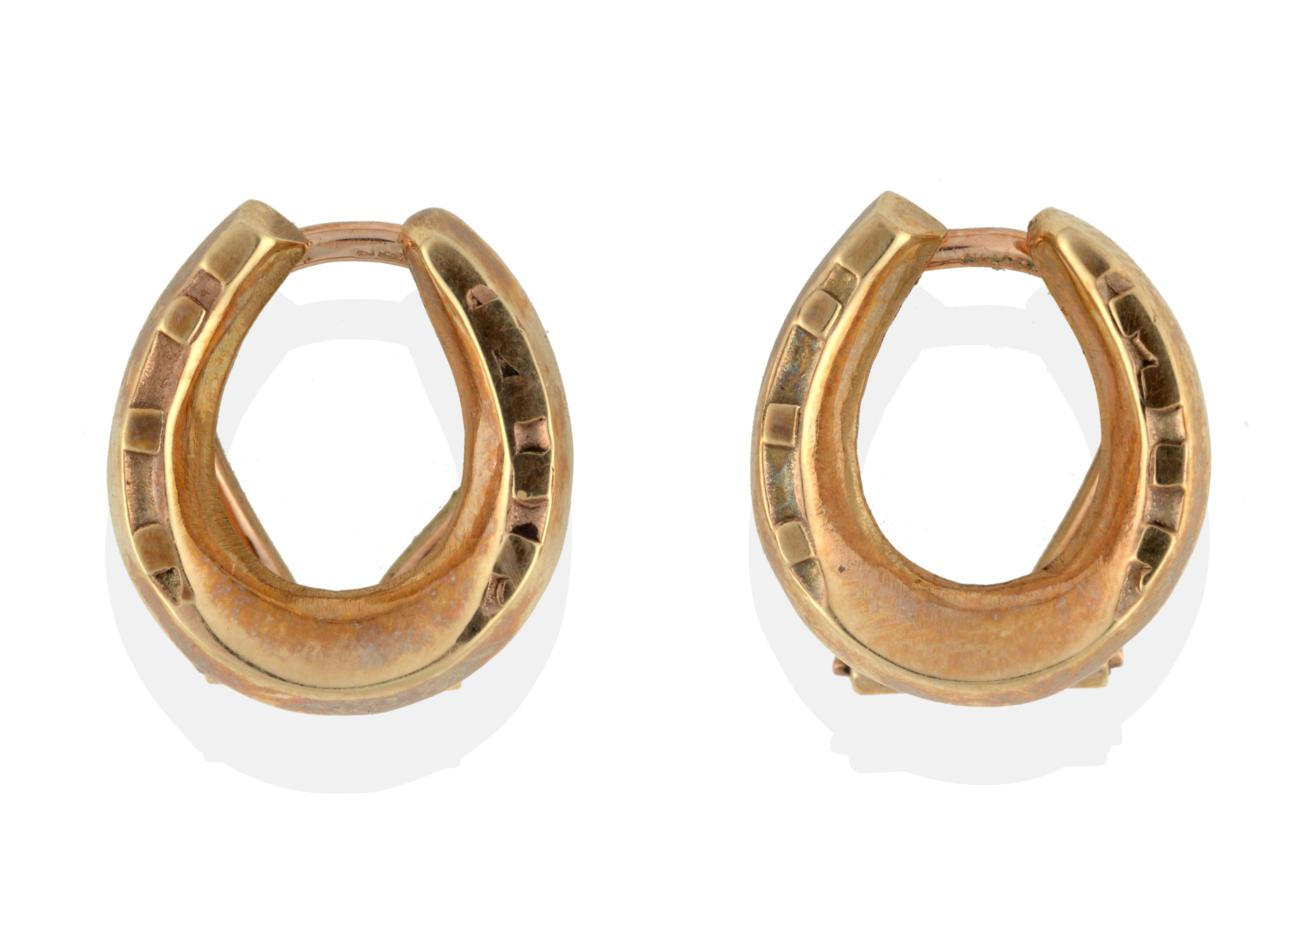 Lot 2071 - A Pair of 9 Carat Gold Horseshoe Earrings, with clip fittings, boxed by Boodle & Dunthorne see...